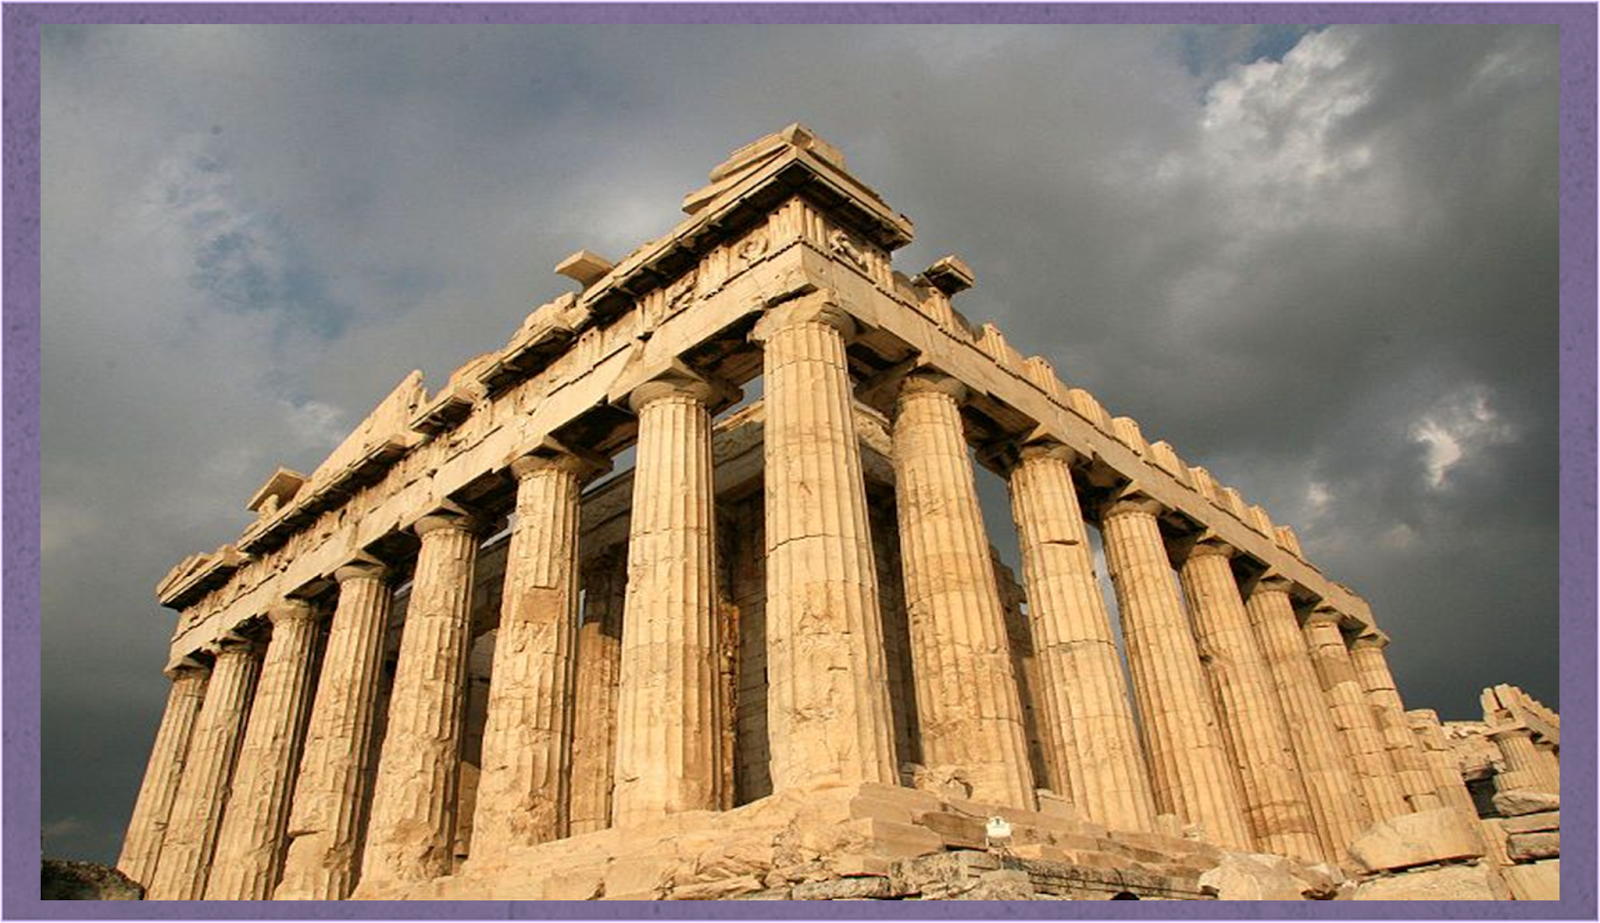 the hellenistic period in greek religion Until now, there has been no comprehensive study of religion in athens from the end of the classical period to the time of rome's domination of the city jon d.